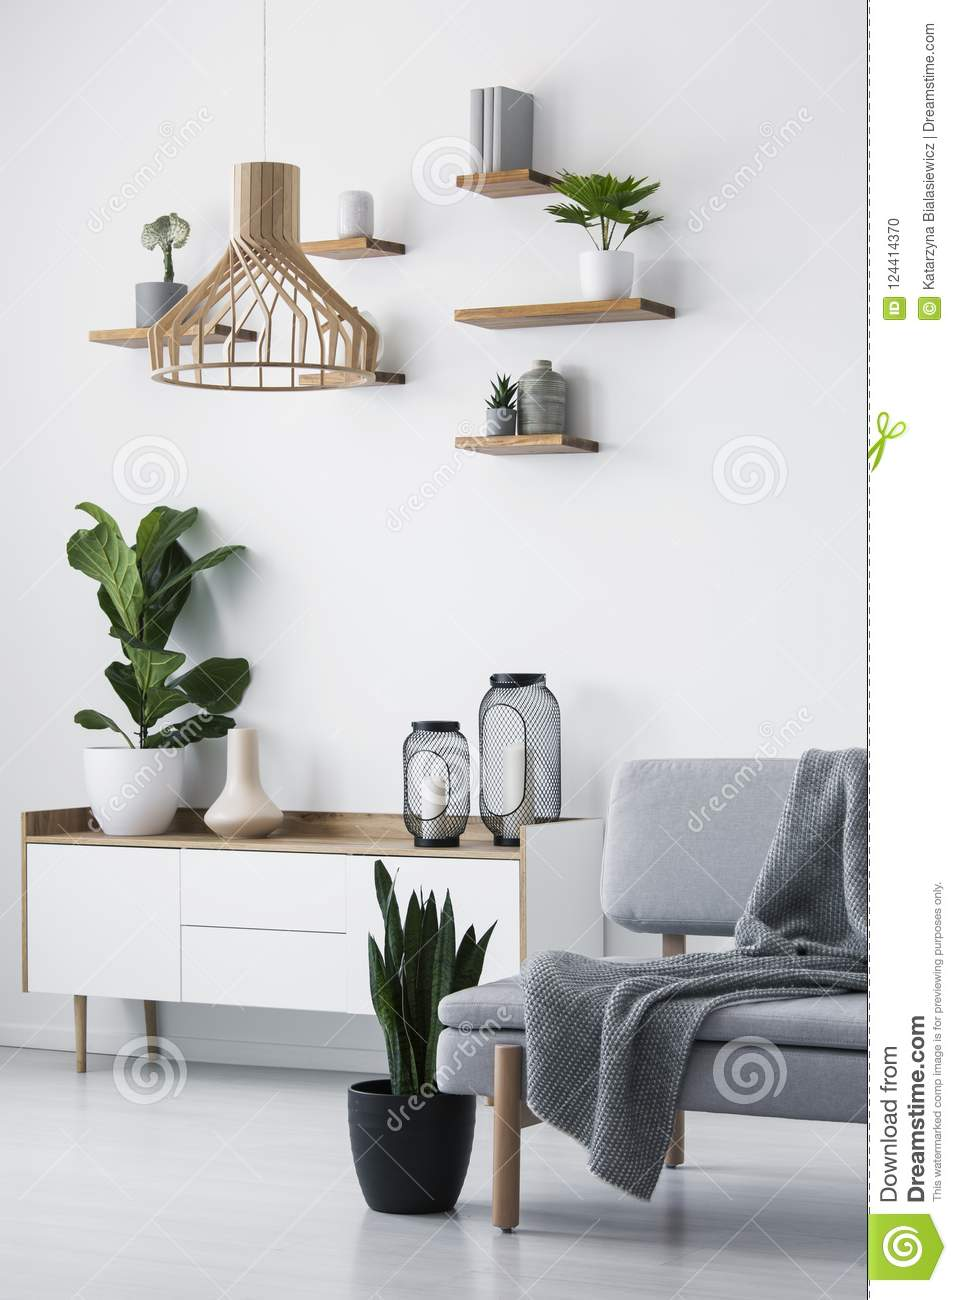 Wooden Pendant Light Simple Shelves On A White Wall And A Plant Stock Photo Image Of Monochromatic Plant 124414370